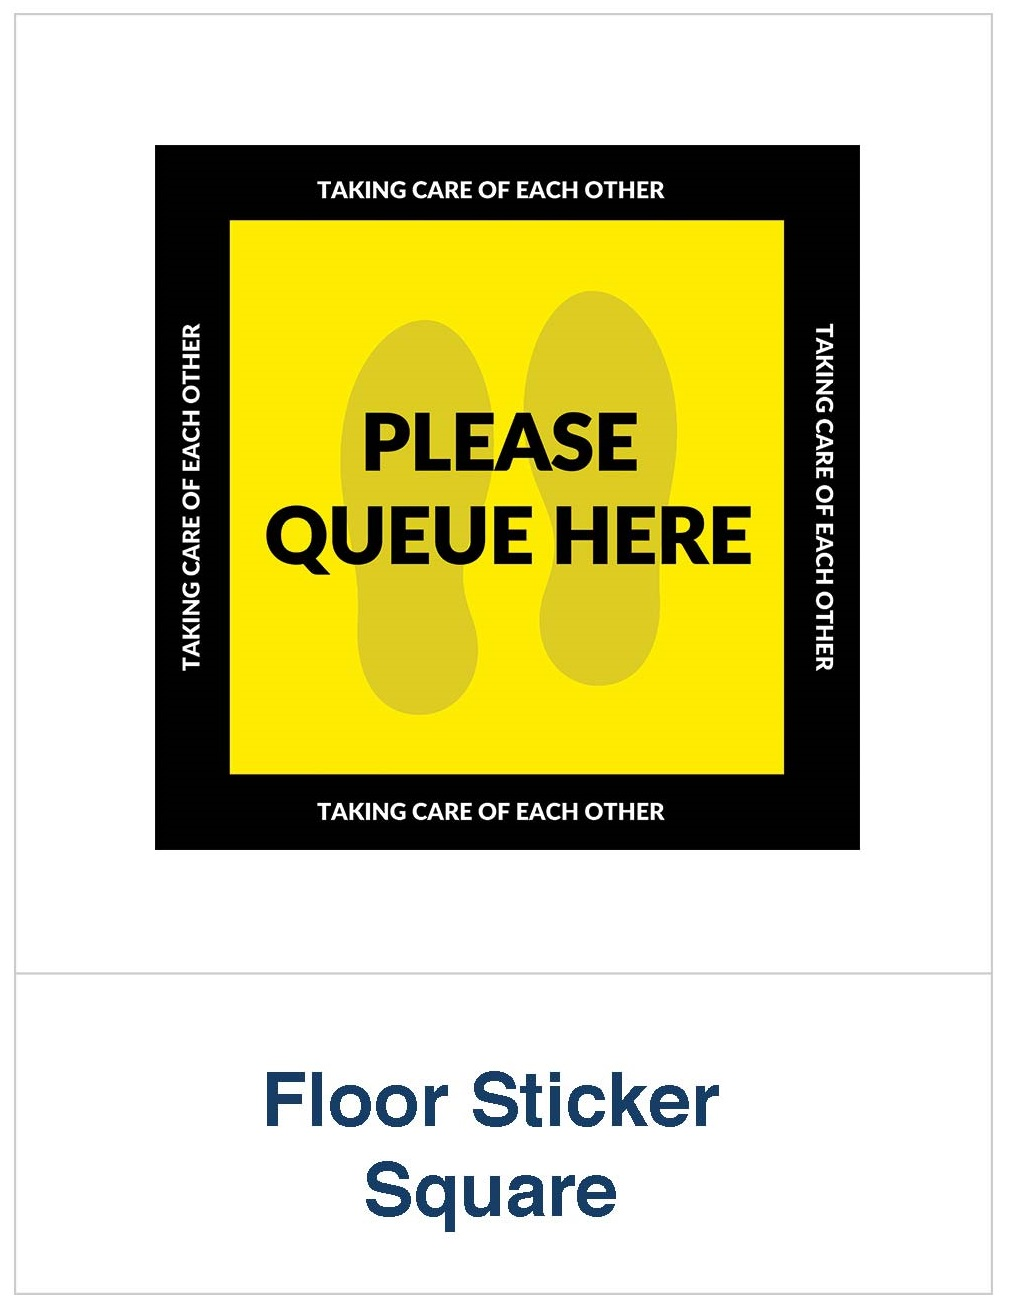 Covid 19 queue floor sticker